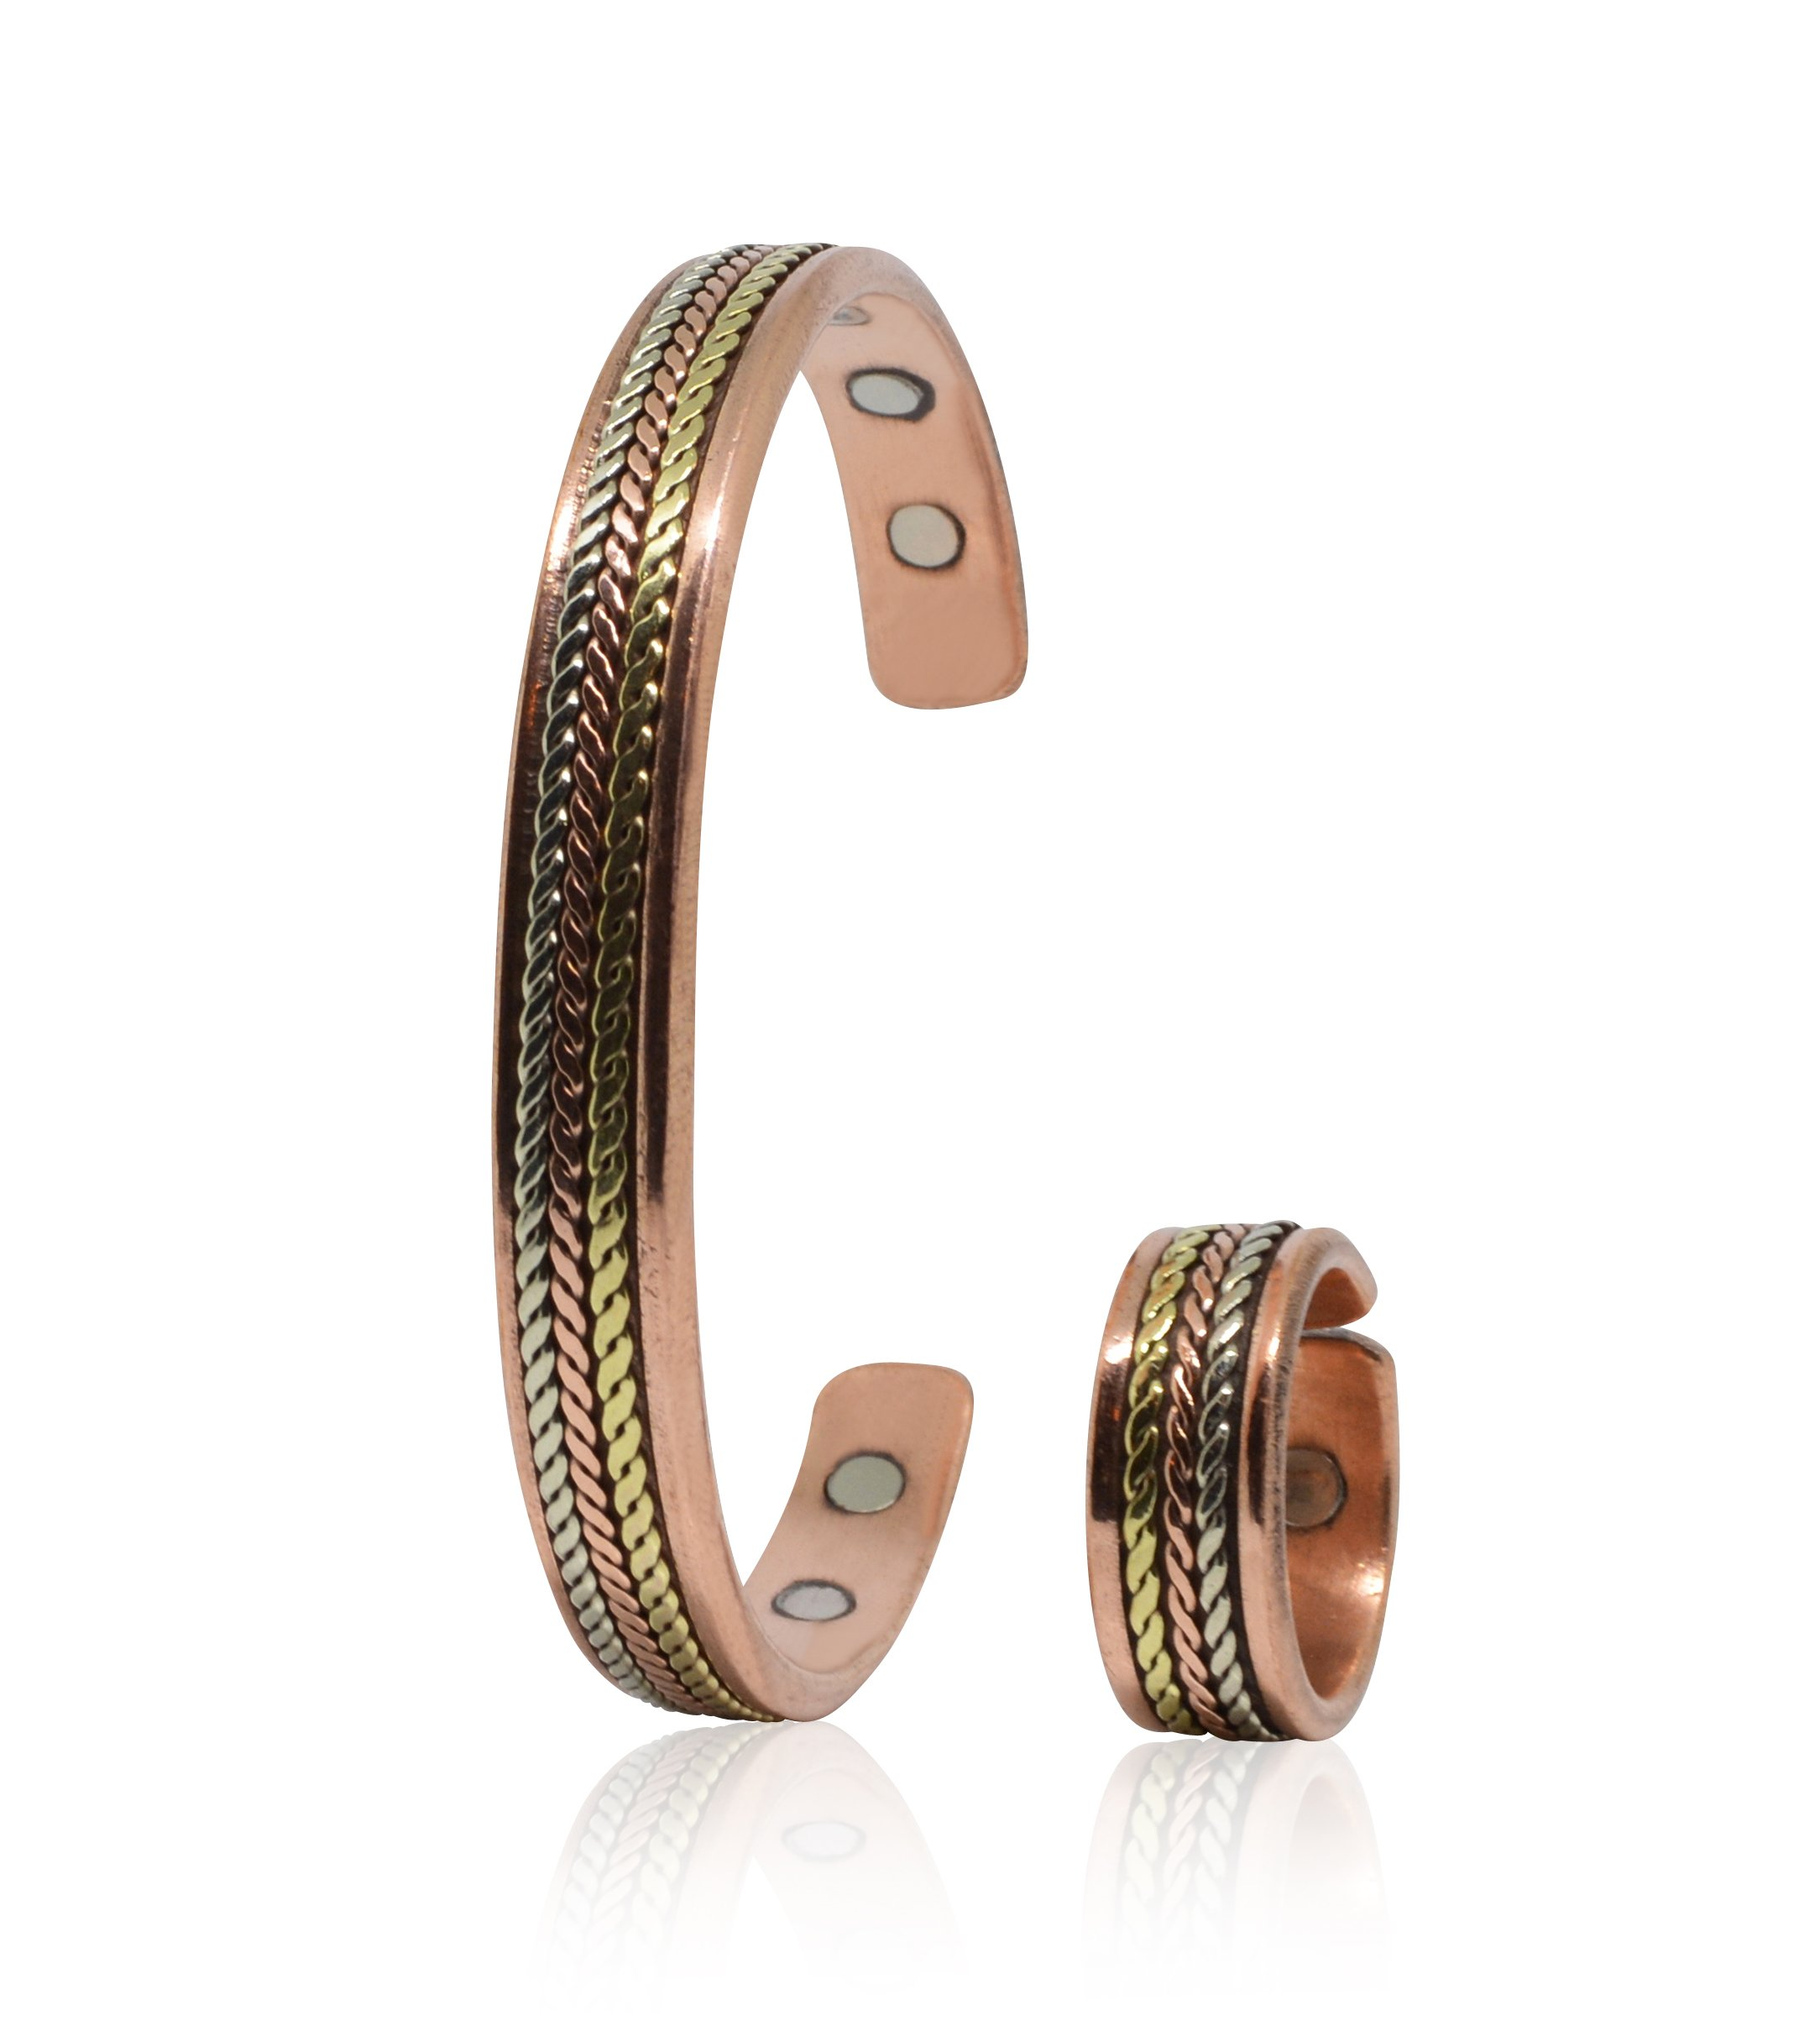 Handmade Copper Bracelet and Ring for Men and Women-Arthritis Therapy Magnetic Bracelets with 6 Powerful Magnets-Effective & Natural Relief for Joint Pain and Arthritis(Braided Inlay+Ring)